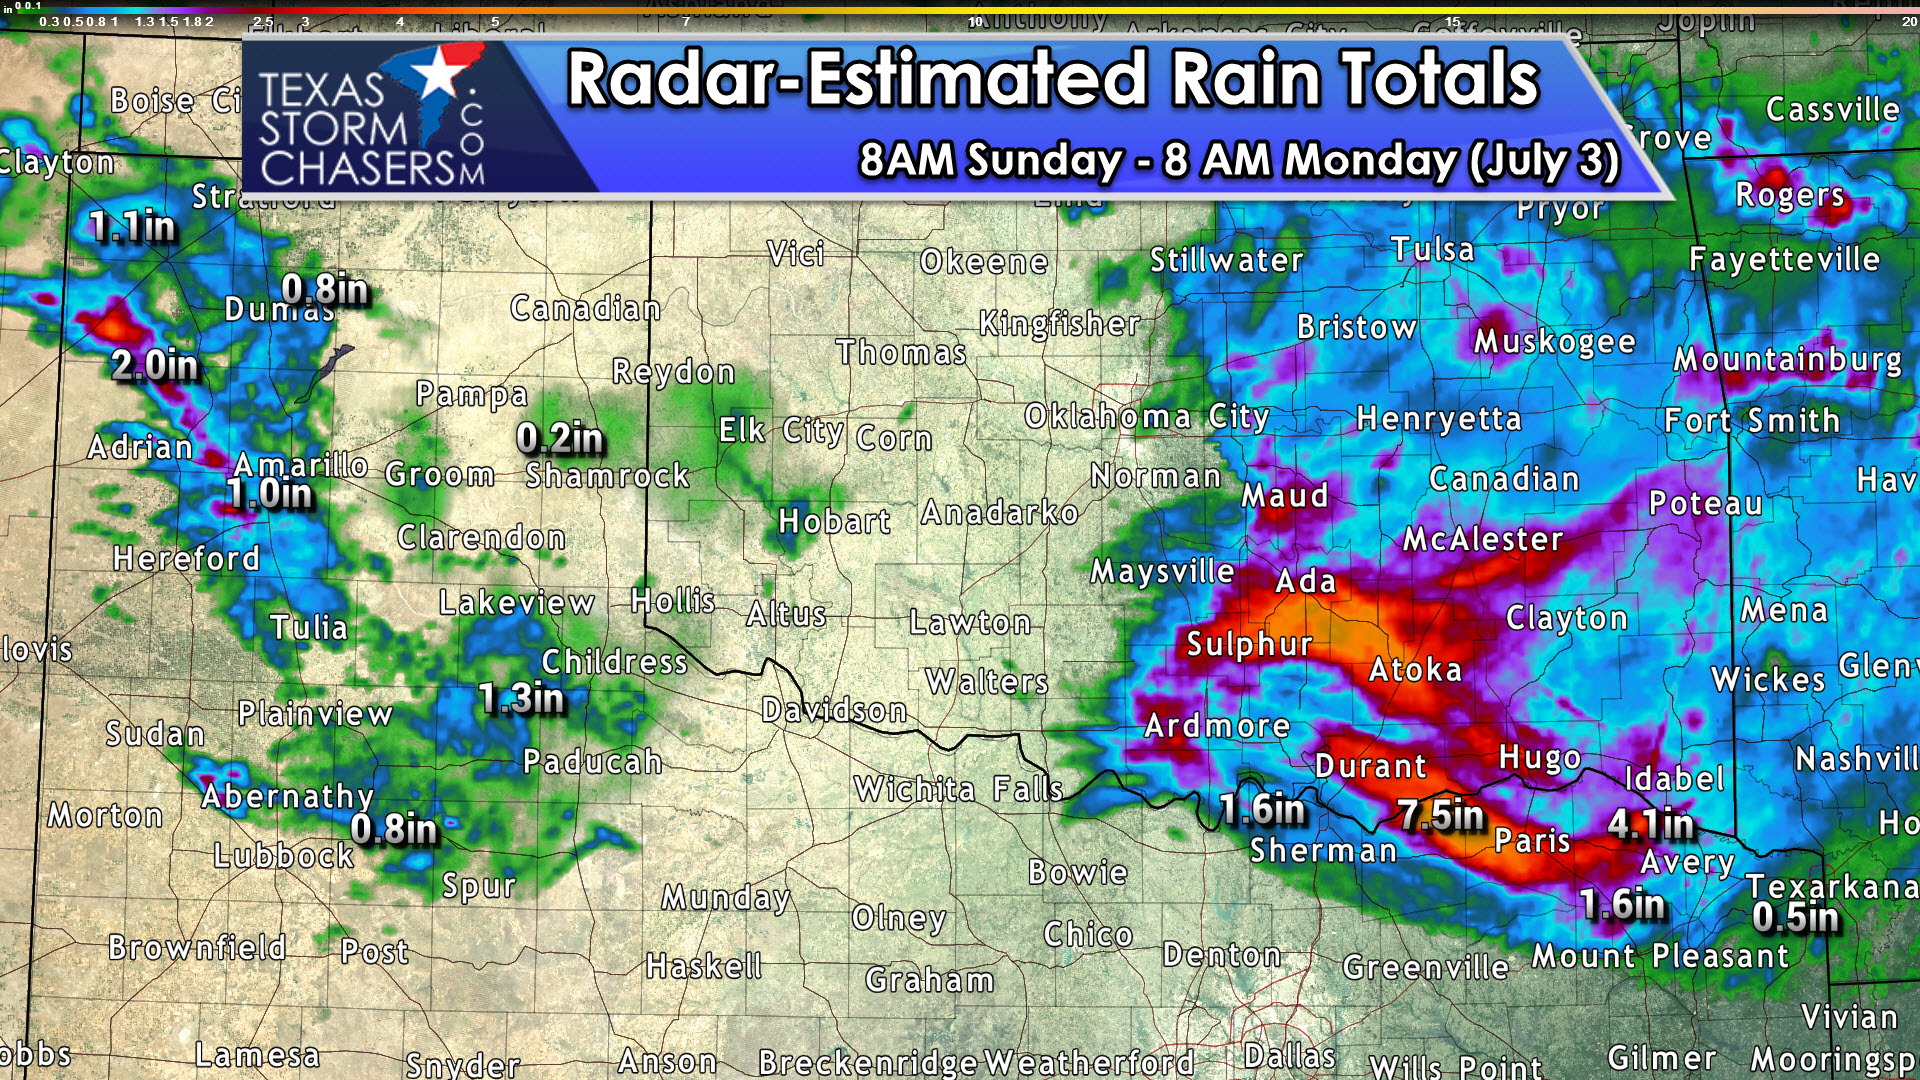 Peak at the Rain Totals over the last 24 Hours